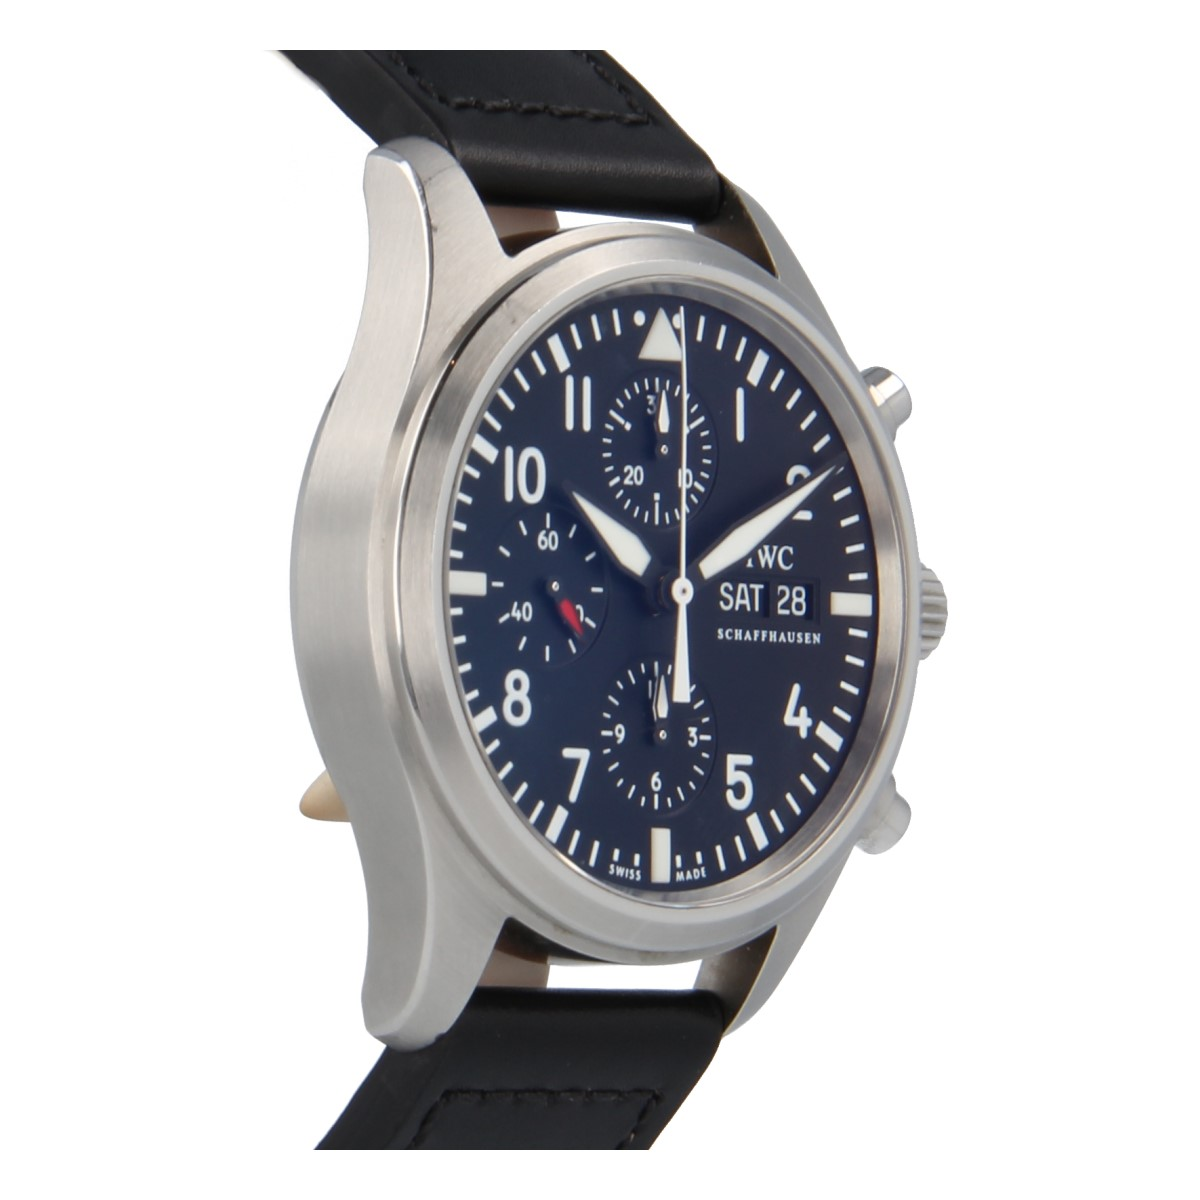 Iwc Pilot Chrono Quot Never Polished Quot Buy Iwc Schaffhausen Watch